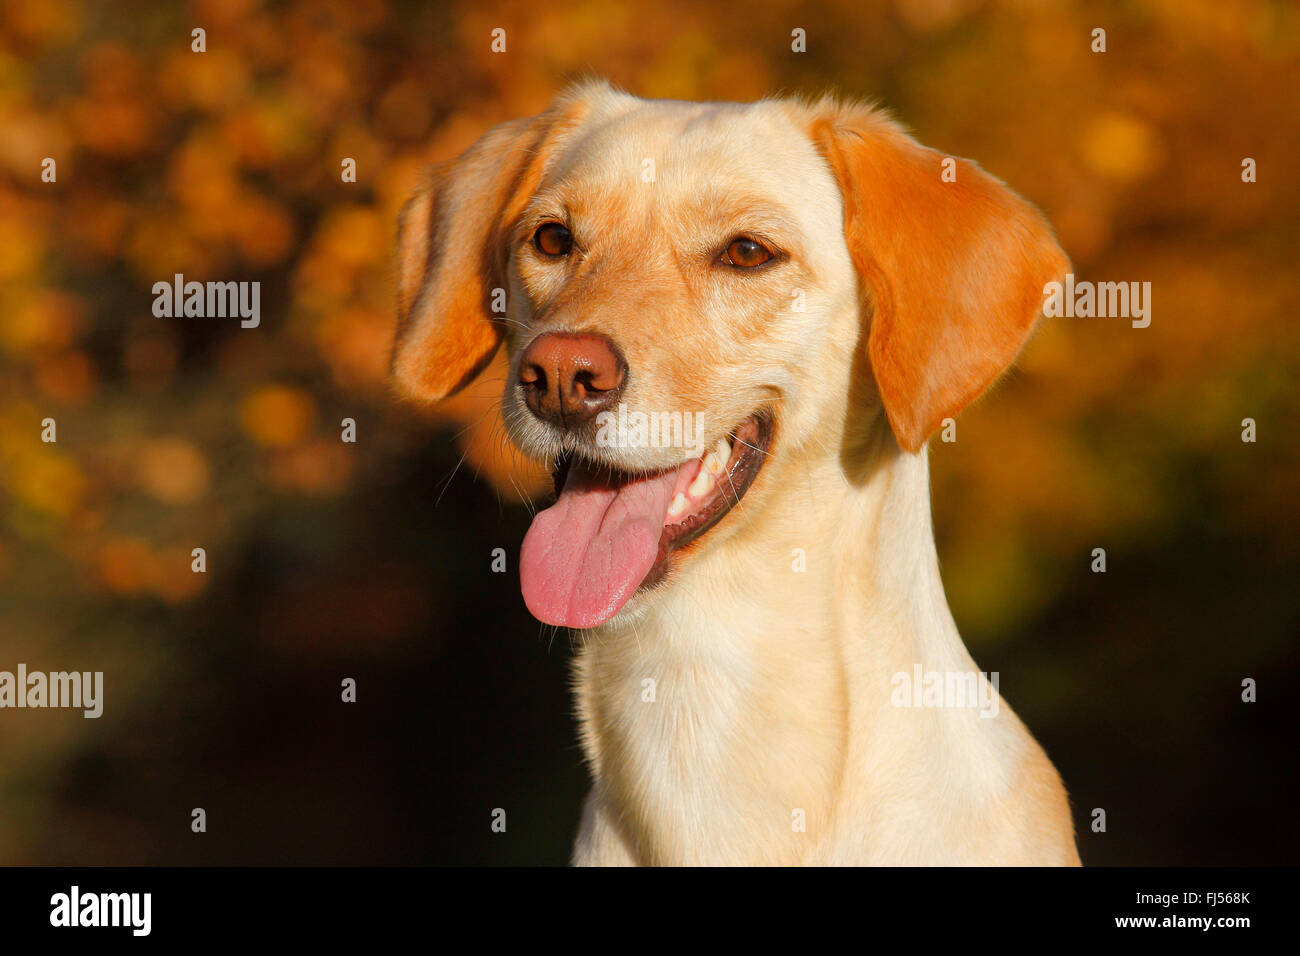 mixed breed dog (Canis lupus f. familiaris), Labrador Magyar Vizsla mixed breed dog with tongue hanging out, portrait, - Stock Image